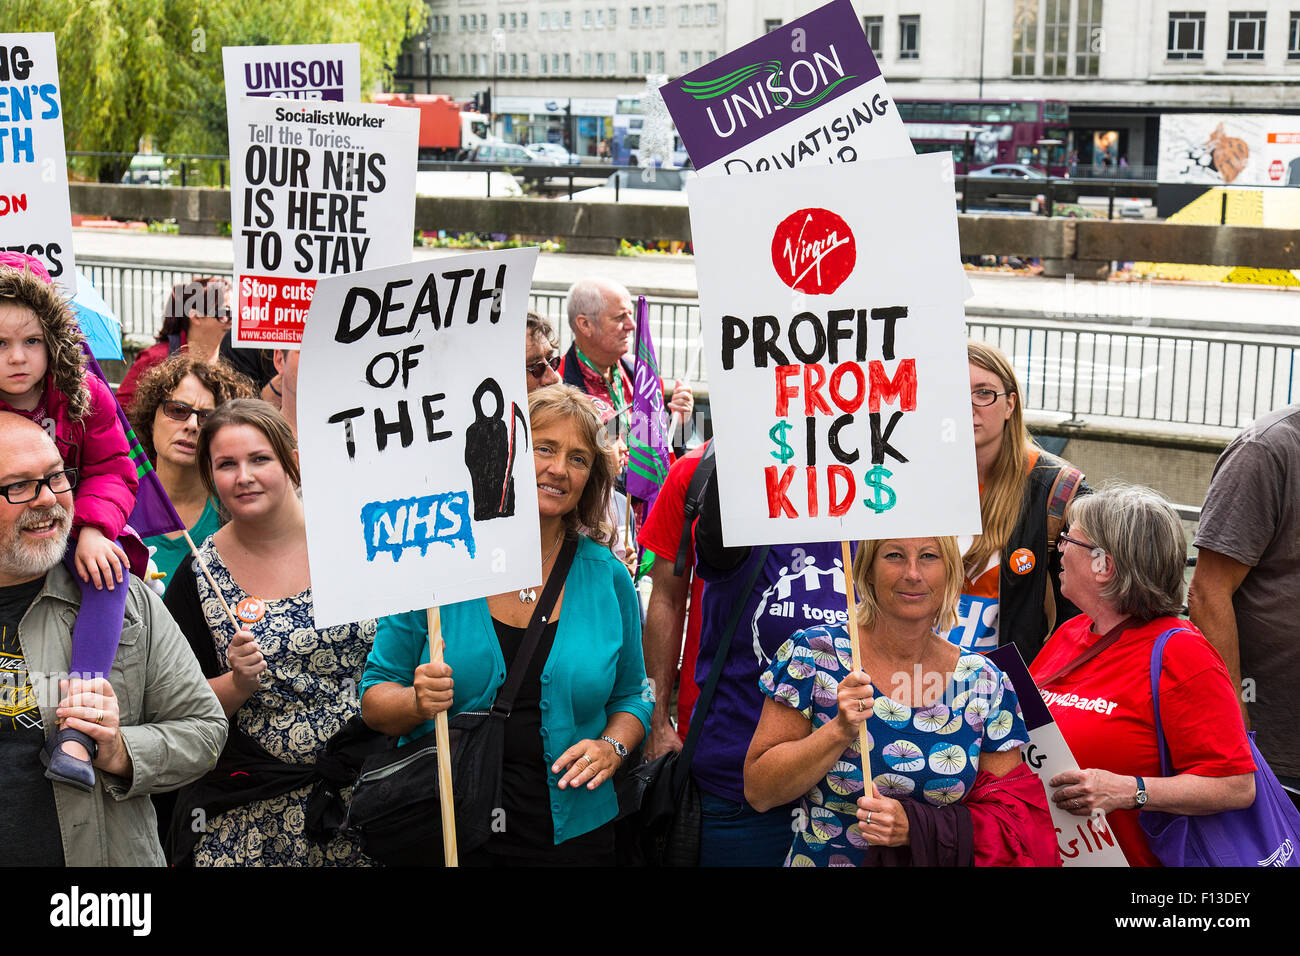 Bristol, UK. 26th Aug, 2015. Approx 300 protesters marched to Bristol NHS Commissioning Group offices demanding - Stock Image